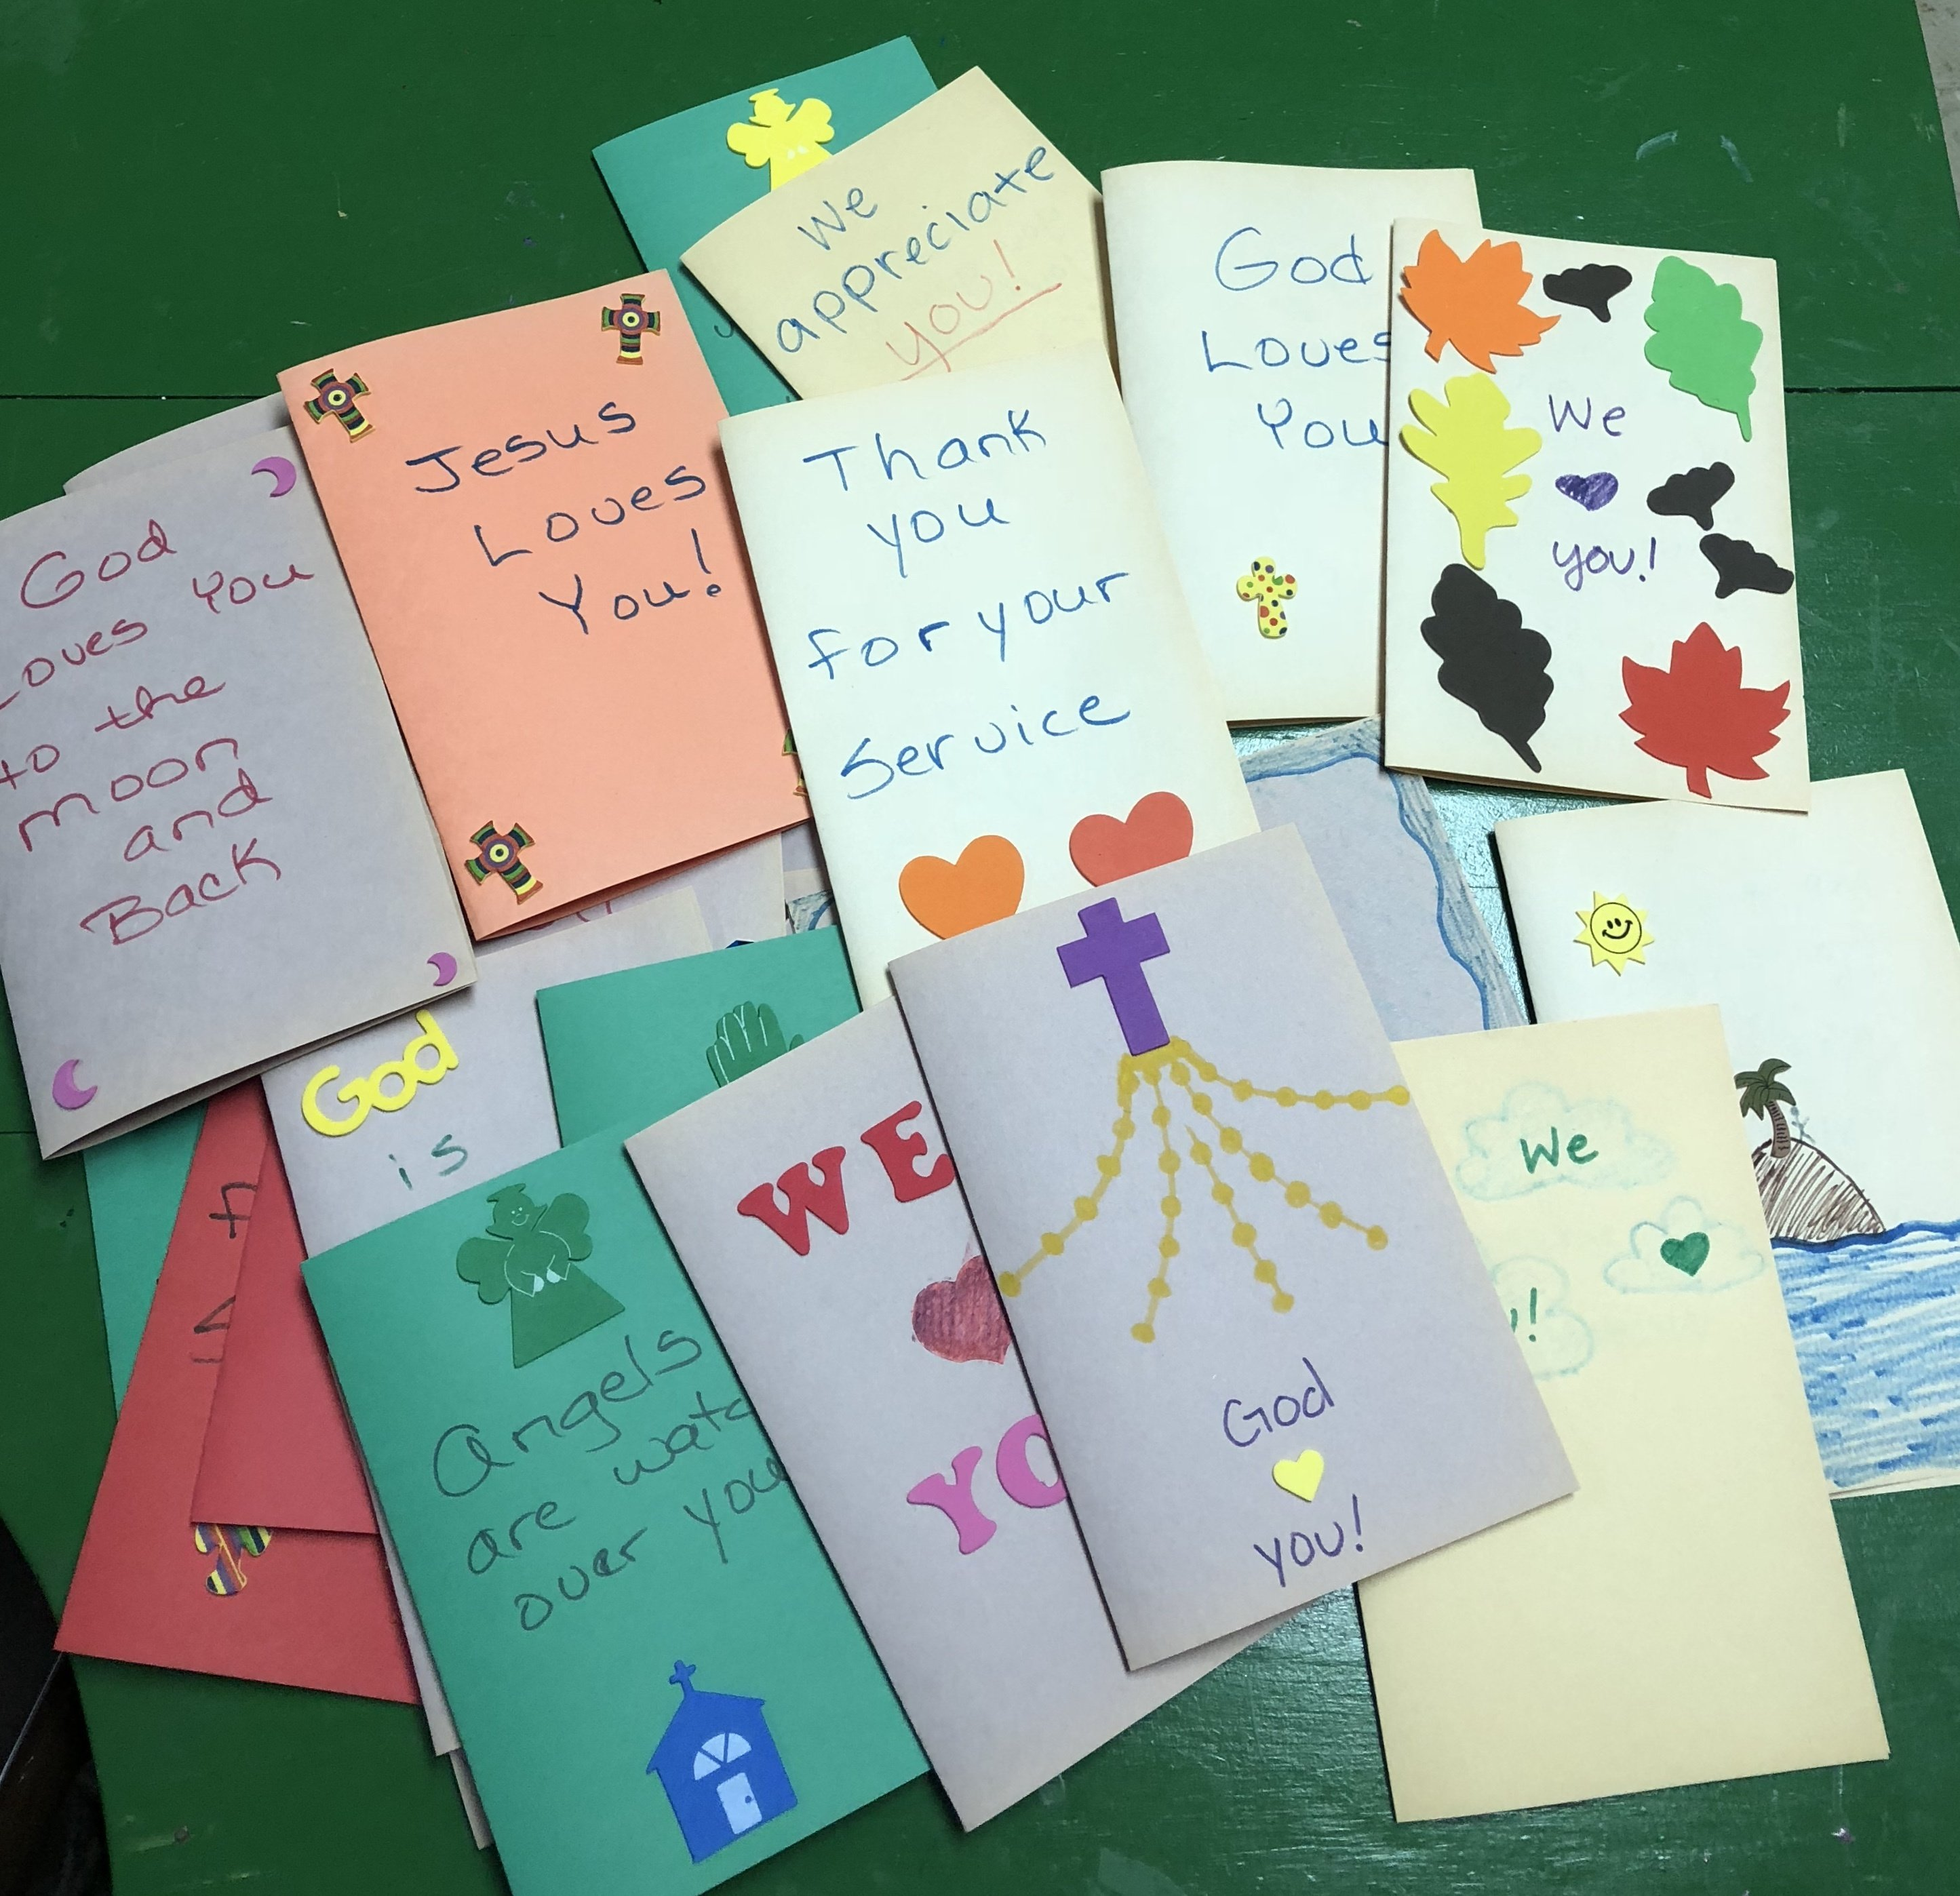 The Sunday School children made cards for the Veterans service project of Altrusa Club.